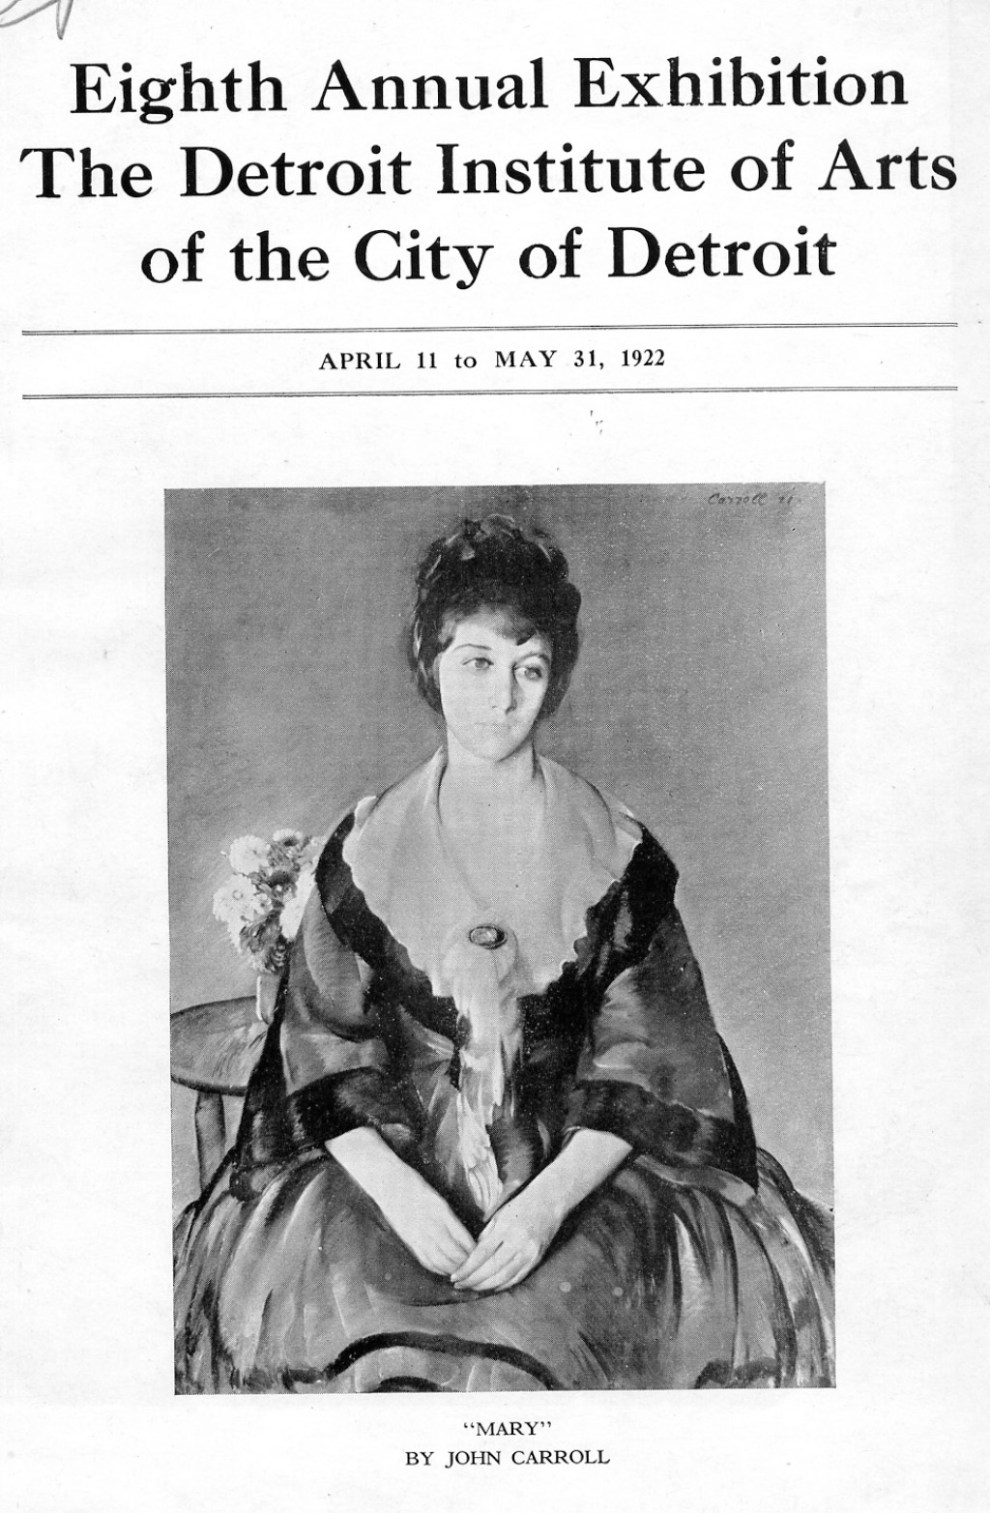 "1922 The Detroit Institute of Arts of the City of Detroit, Detroit, MI, ""Eighth Annual Exhibition"", April 11 - May 31"